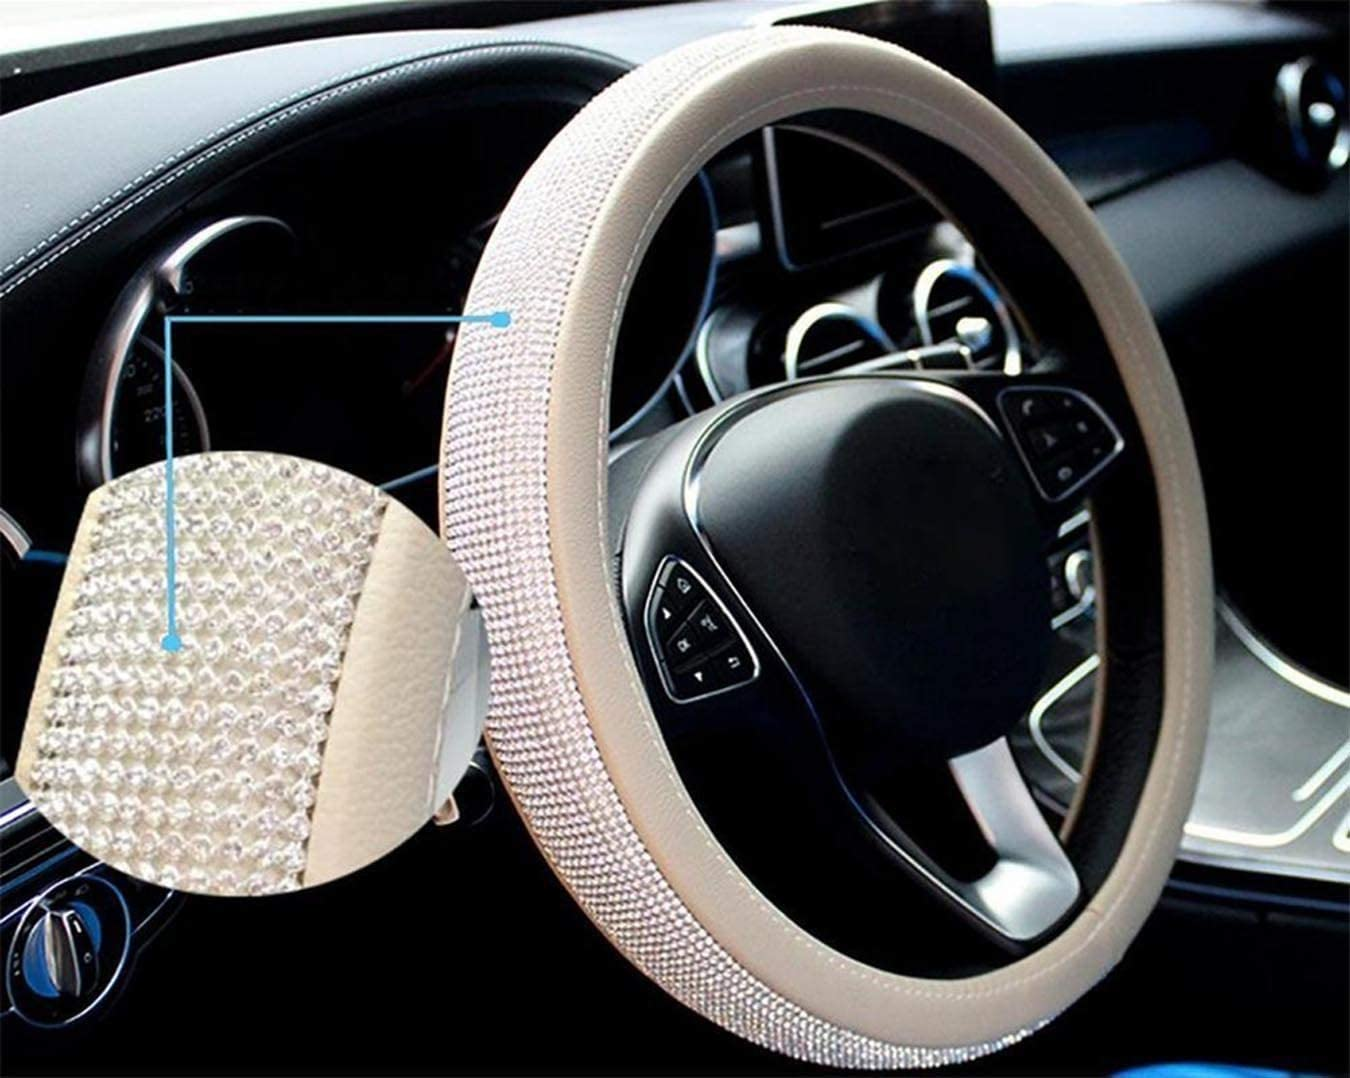 Black Crown ixiton New Diamond+Leather Steering Wheel Cover,Bling Crystal Rhinestones Steering Wheel Cover Universal Fit 15 Car Wheel Protector for Women Girls